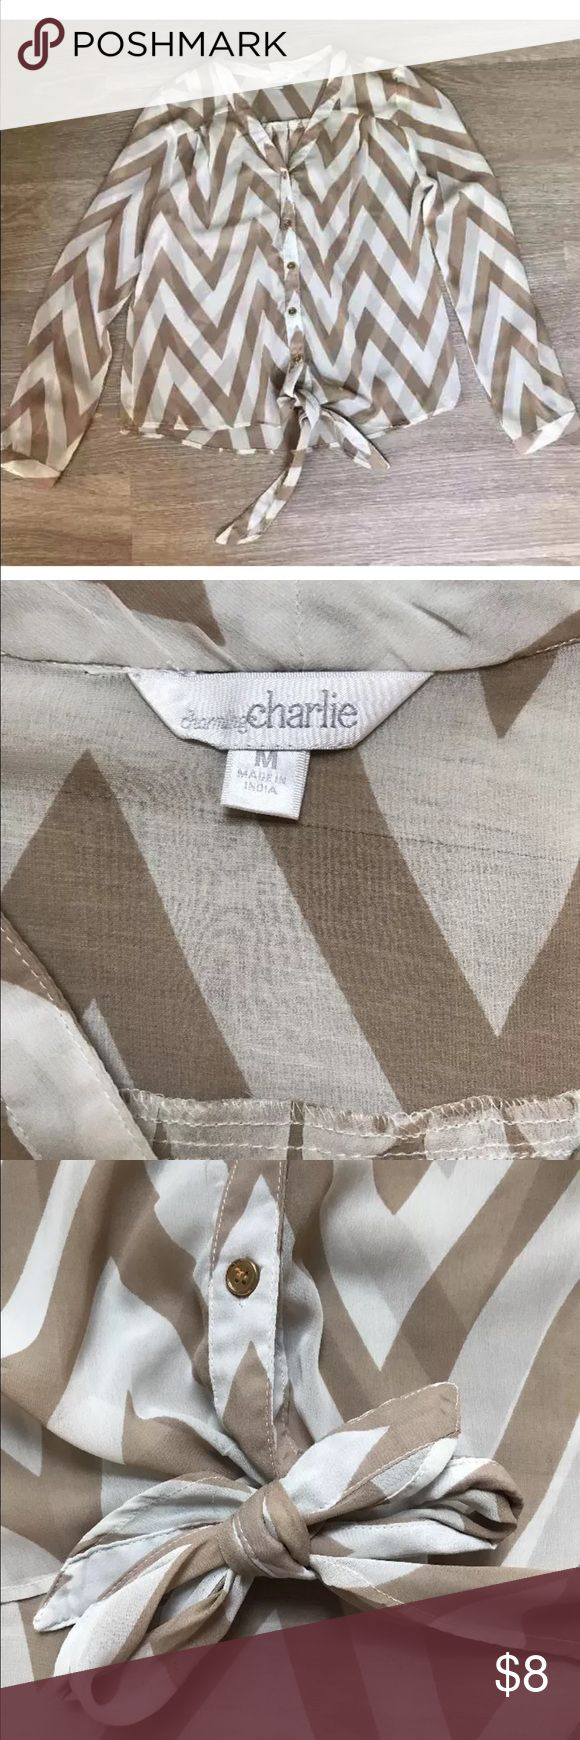 Charming Charlie Long Sleeve Women's Chevron Top Brand: Charming Charlie Size: Medium Style: Long Sleeve Button Down with Tie Front Patten / Color: Chevron white and beige Condition: Great Condition Blemish: Small black mark on Sleeve cuff (see photos) Charming Charlie Tops Blouses